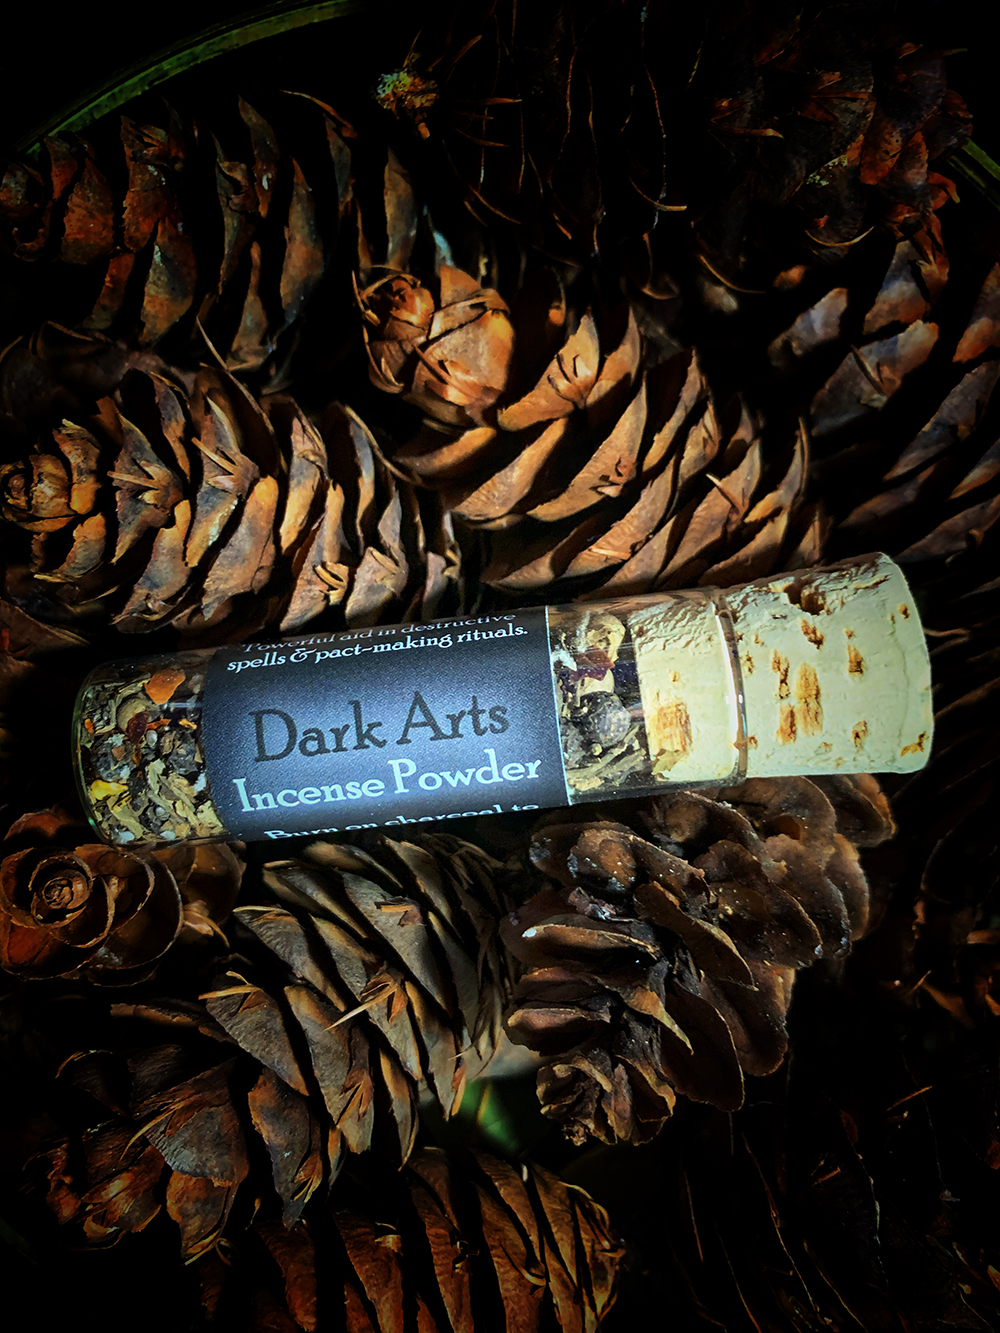 Dark Arts Incense